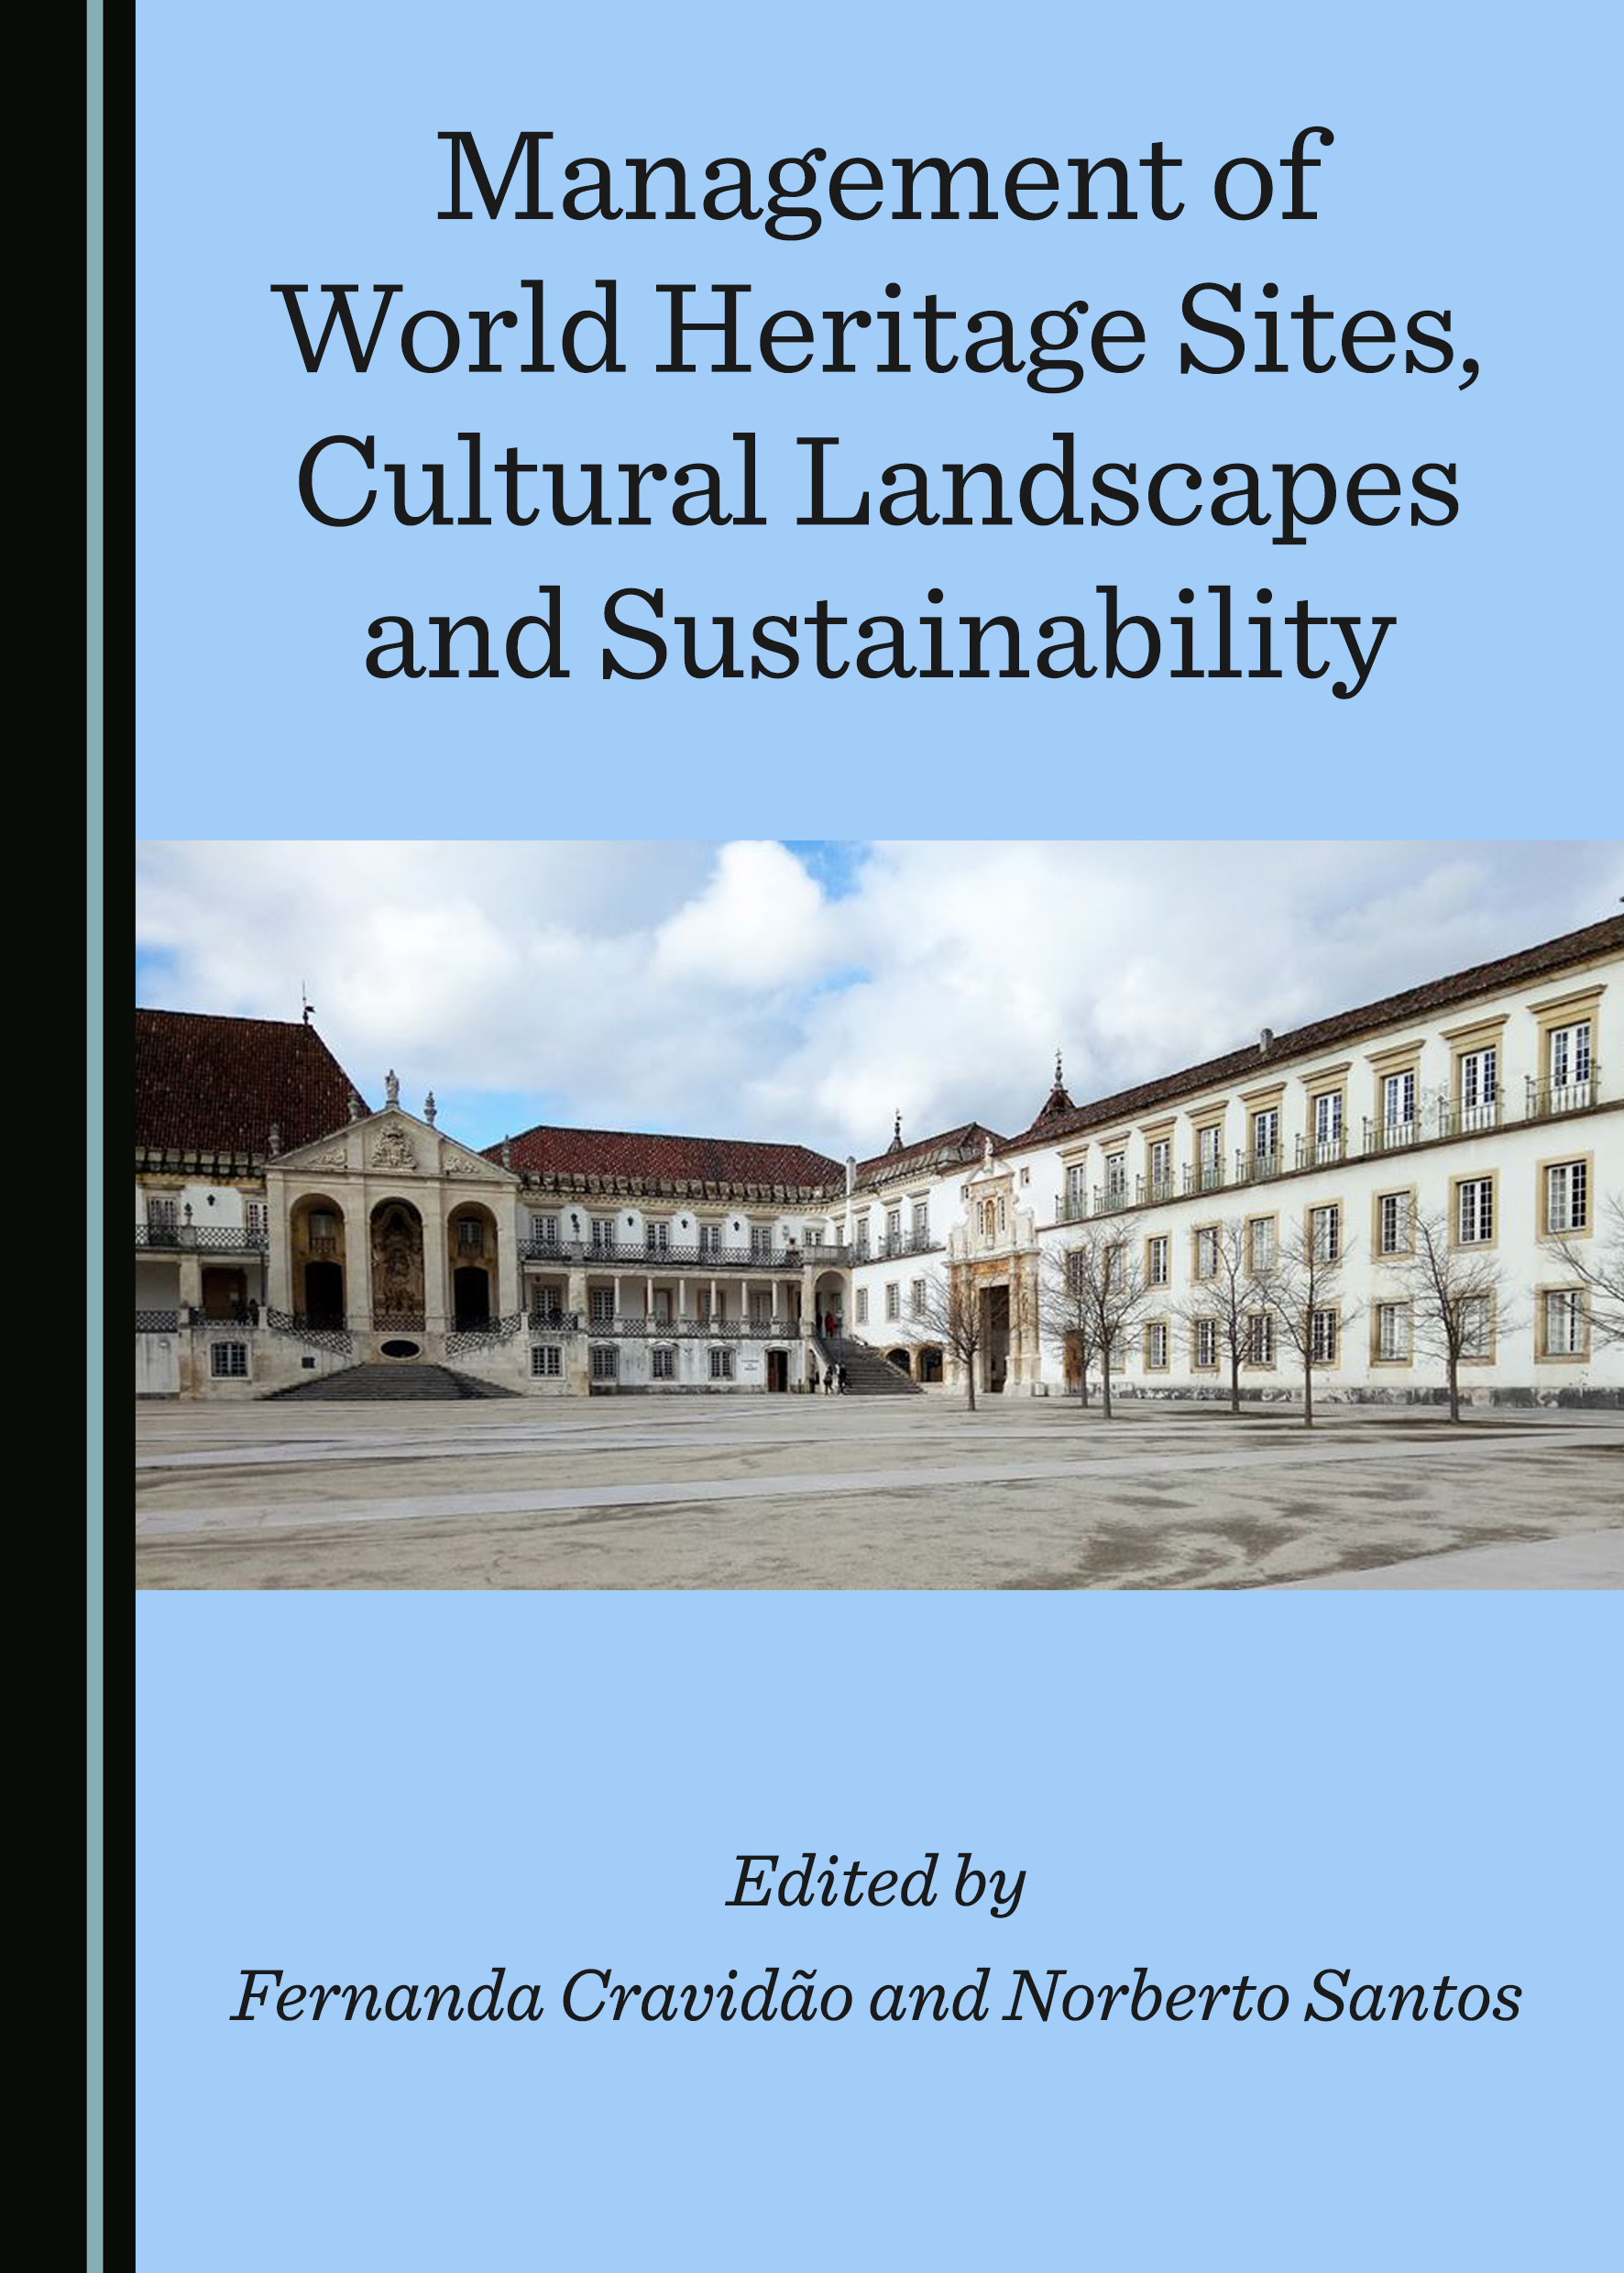 Management of World Heritage Sites, Cultural Landscapes and Sustainability